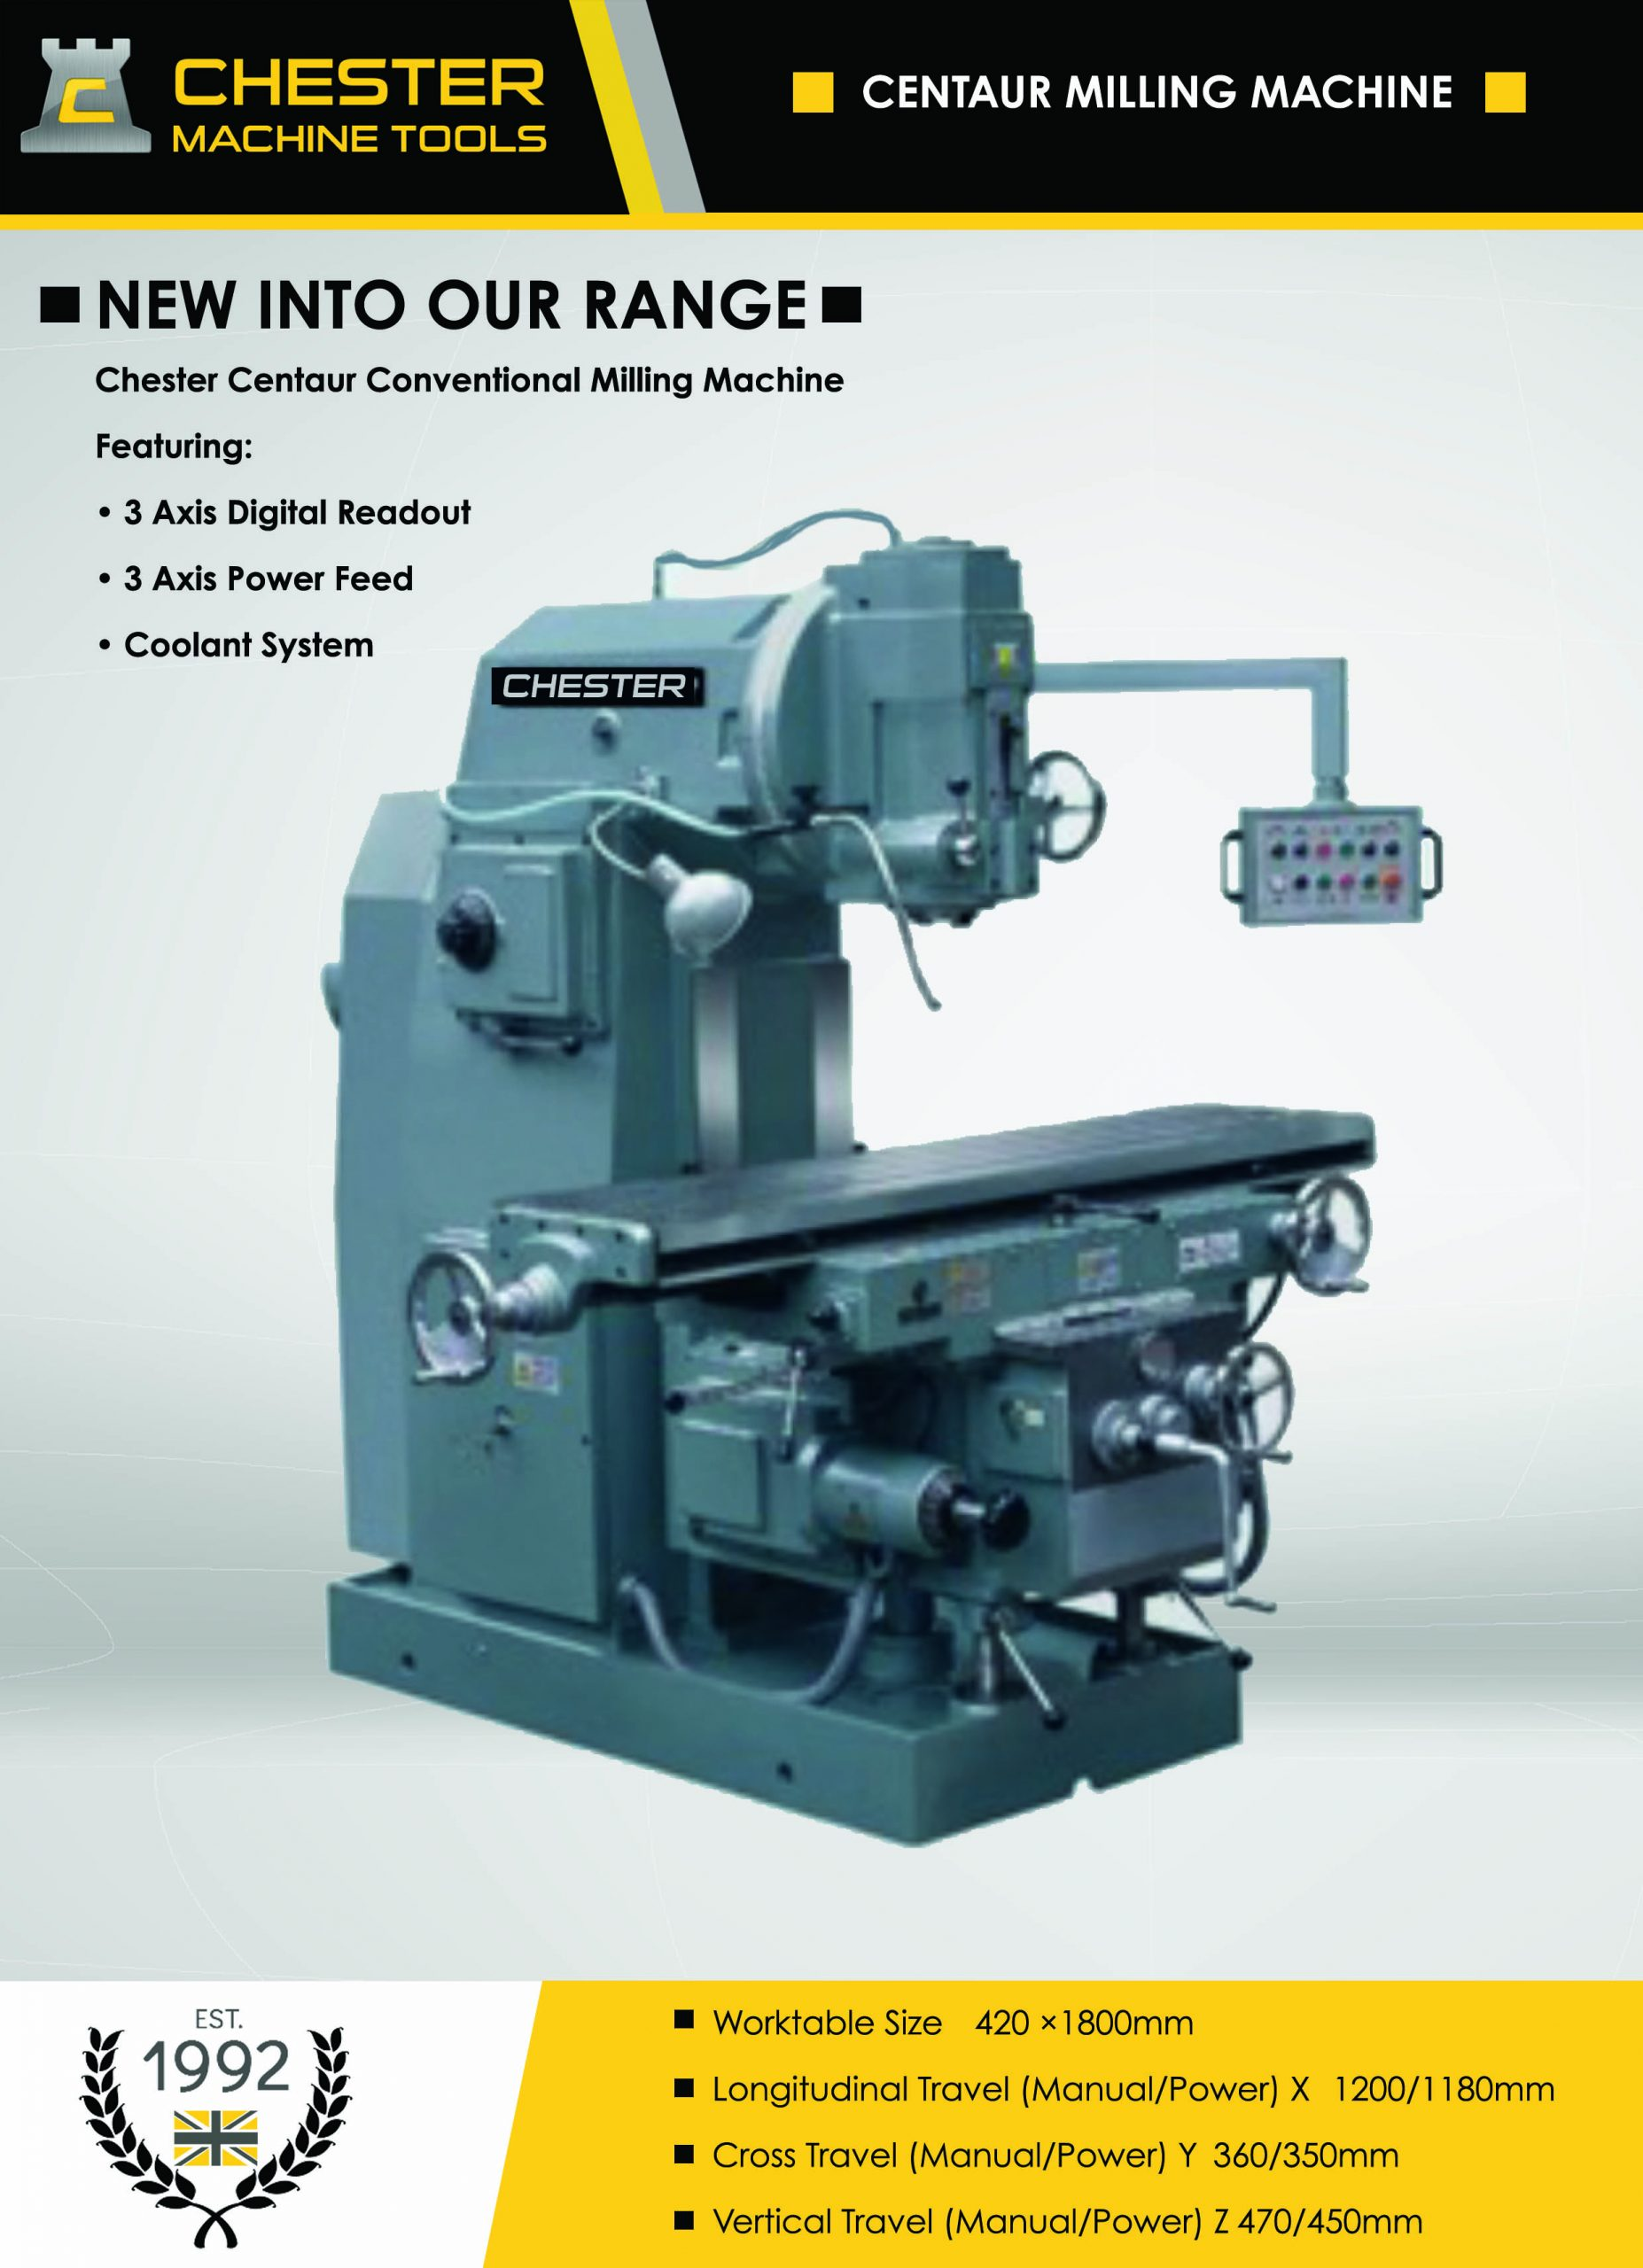 Capacity Conventional Milling Machines – Chester Centaur The Debut